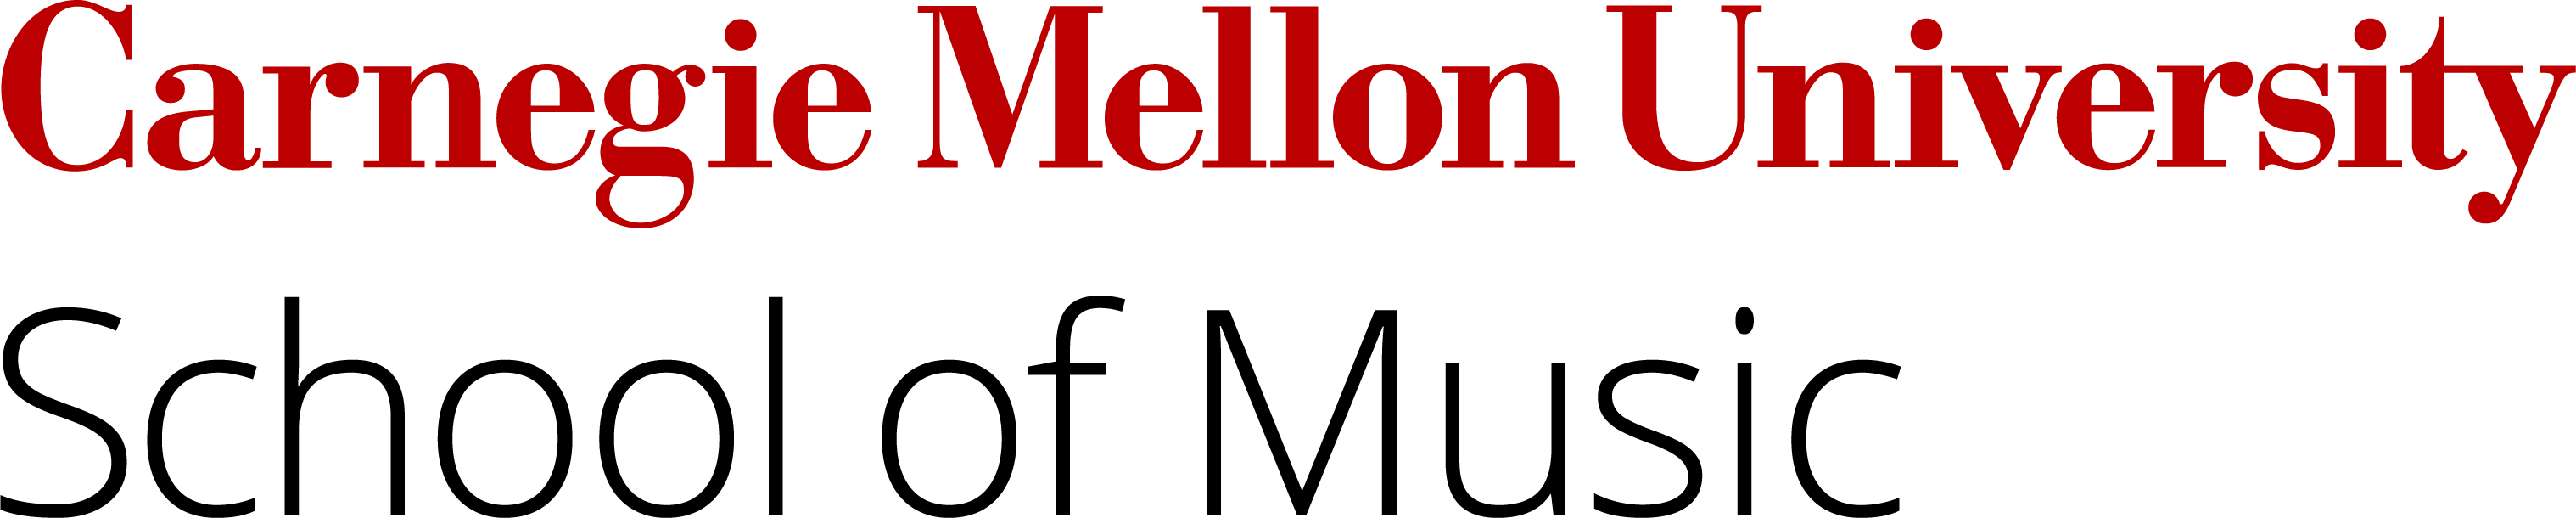 Carnegie Mellon School of Music Unit Mark